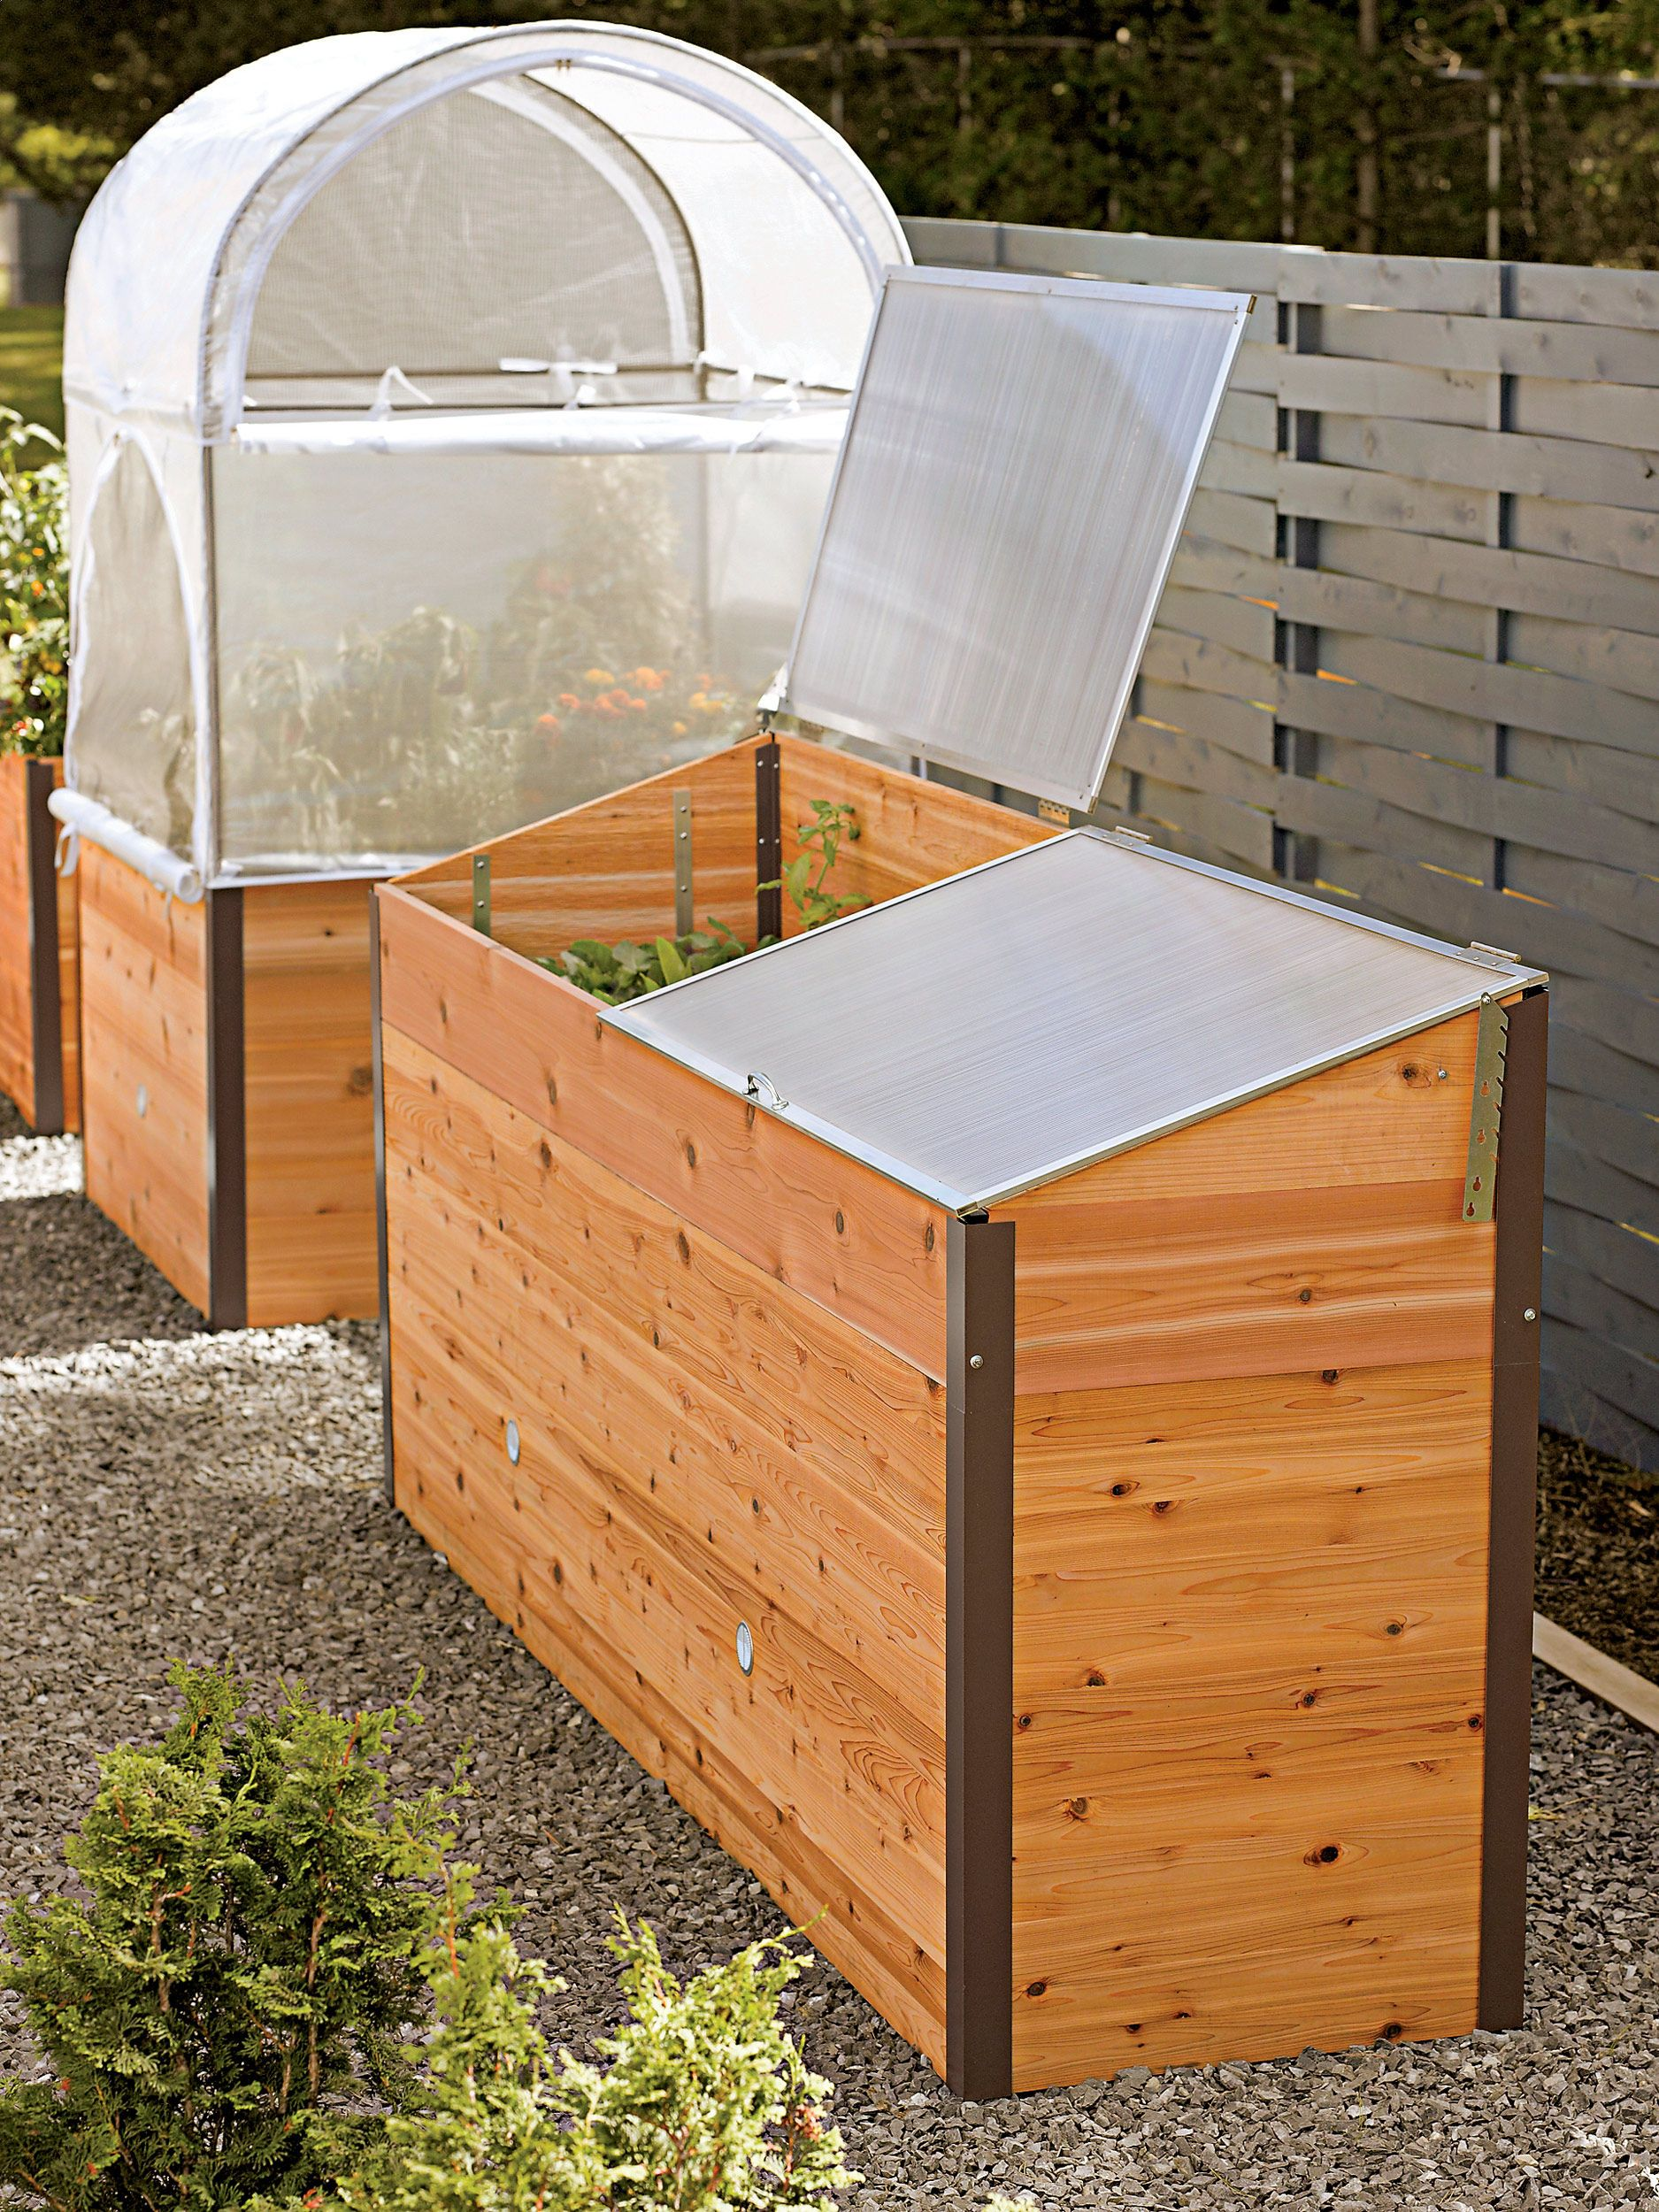 Elevated Raised Bed with Cold Frame | Greenhouse Planter | Made in on small glass designs, small industrial building designs, small pre-built homes, small boat slip designs, small boathouse designs, small floral designs, small greenhouses for backyards, small carport designs, small bell tower designs, small business designs, small green roof designs, small science designs, small flowers designs, small spring designs, small gazebo designs, small garden designs, small wood designs, glass greenhouses designs, small hotel designs, small sauna designs,